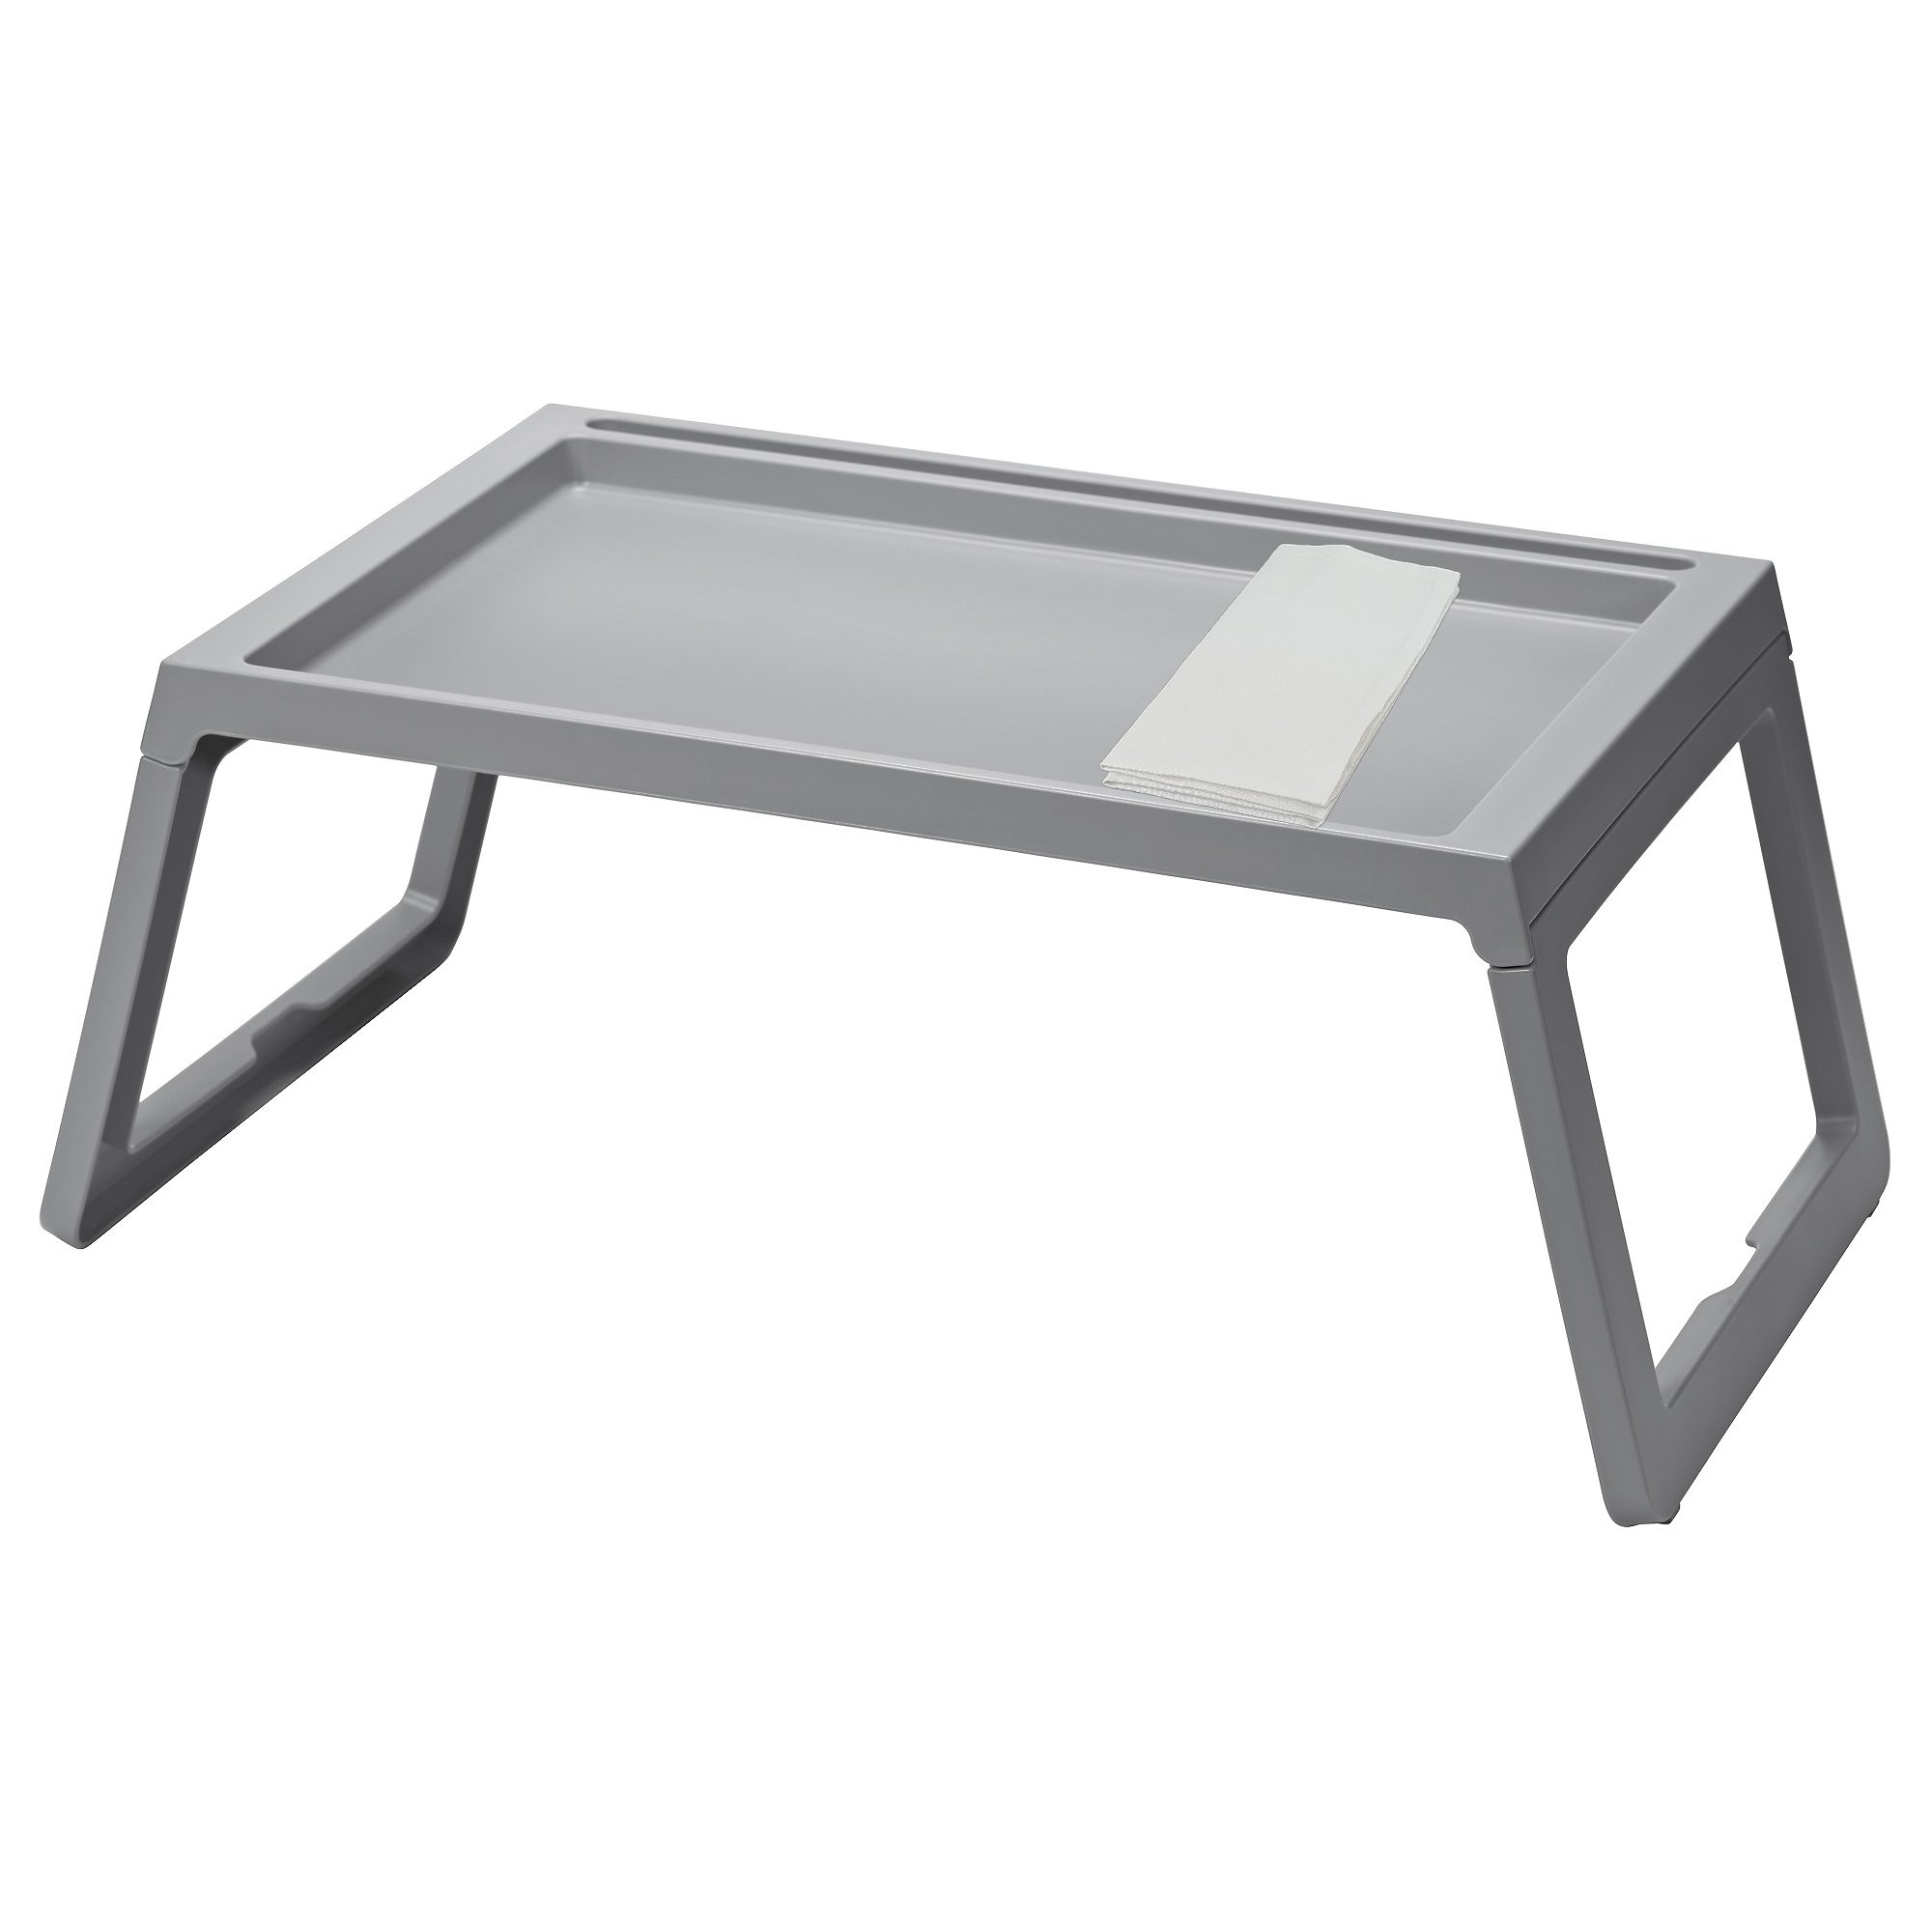 IKEA TV Lap Tray, Gray - Good For TV, Movies, Breakfast in Bed, Lunch, Brunch, Dinner